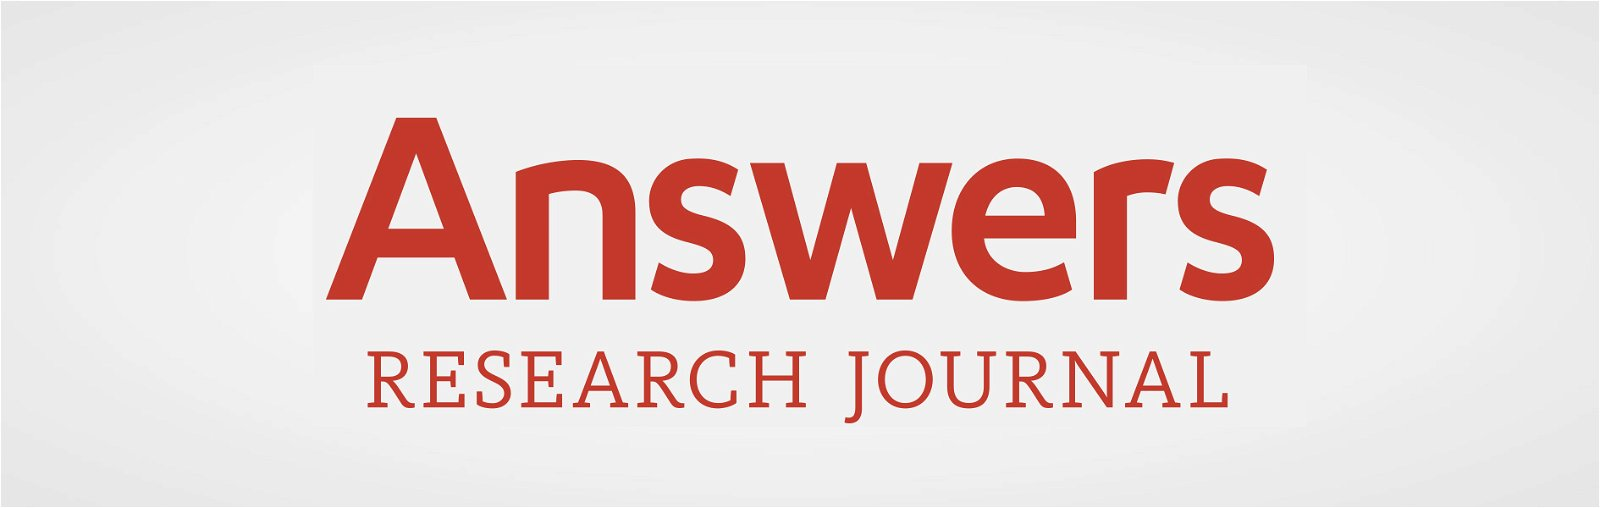 Answers Research Journal